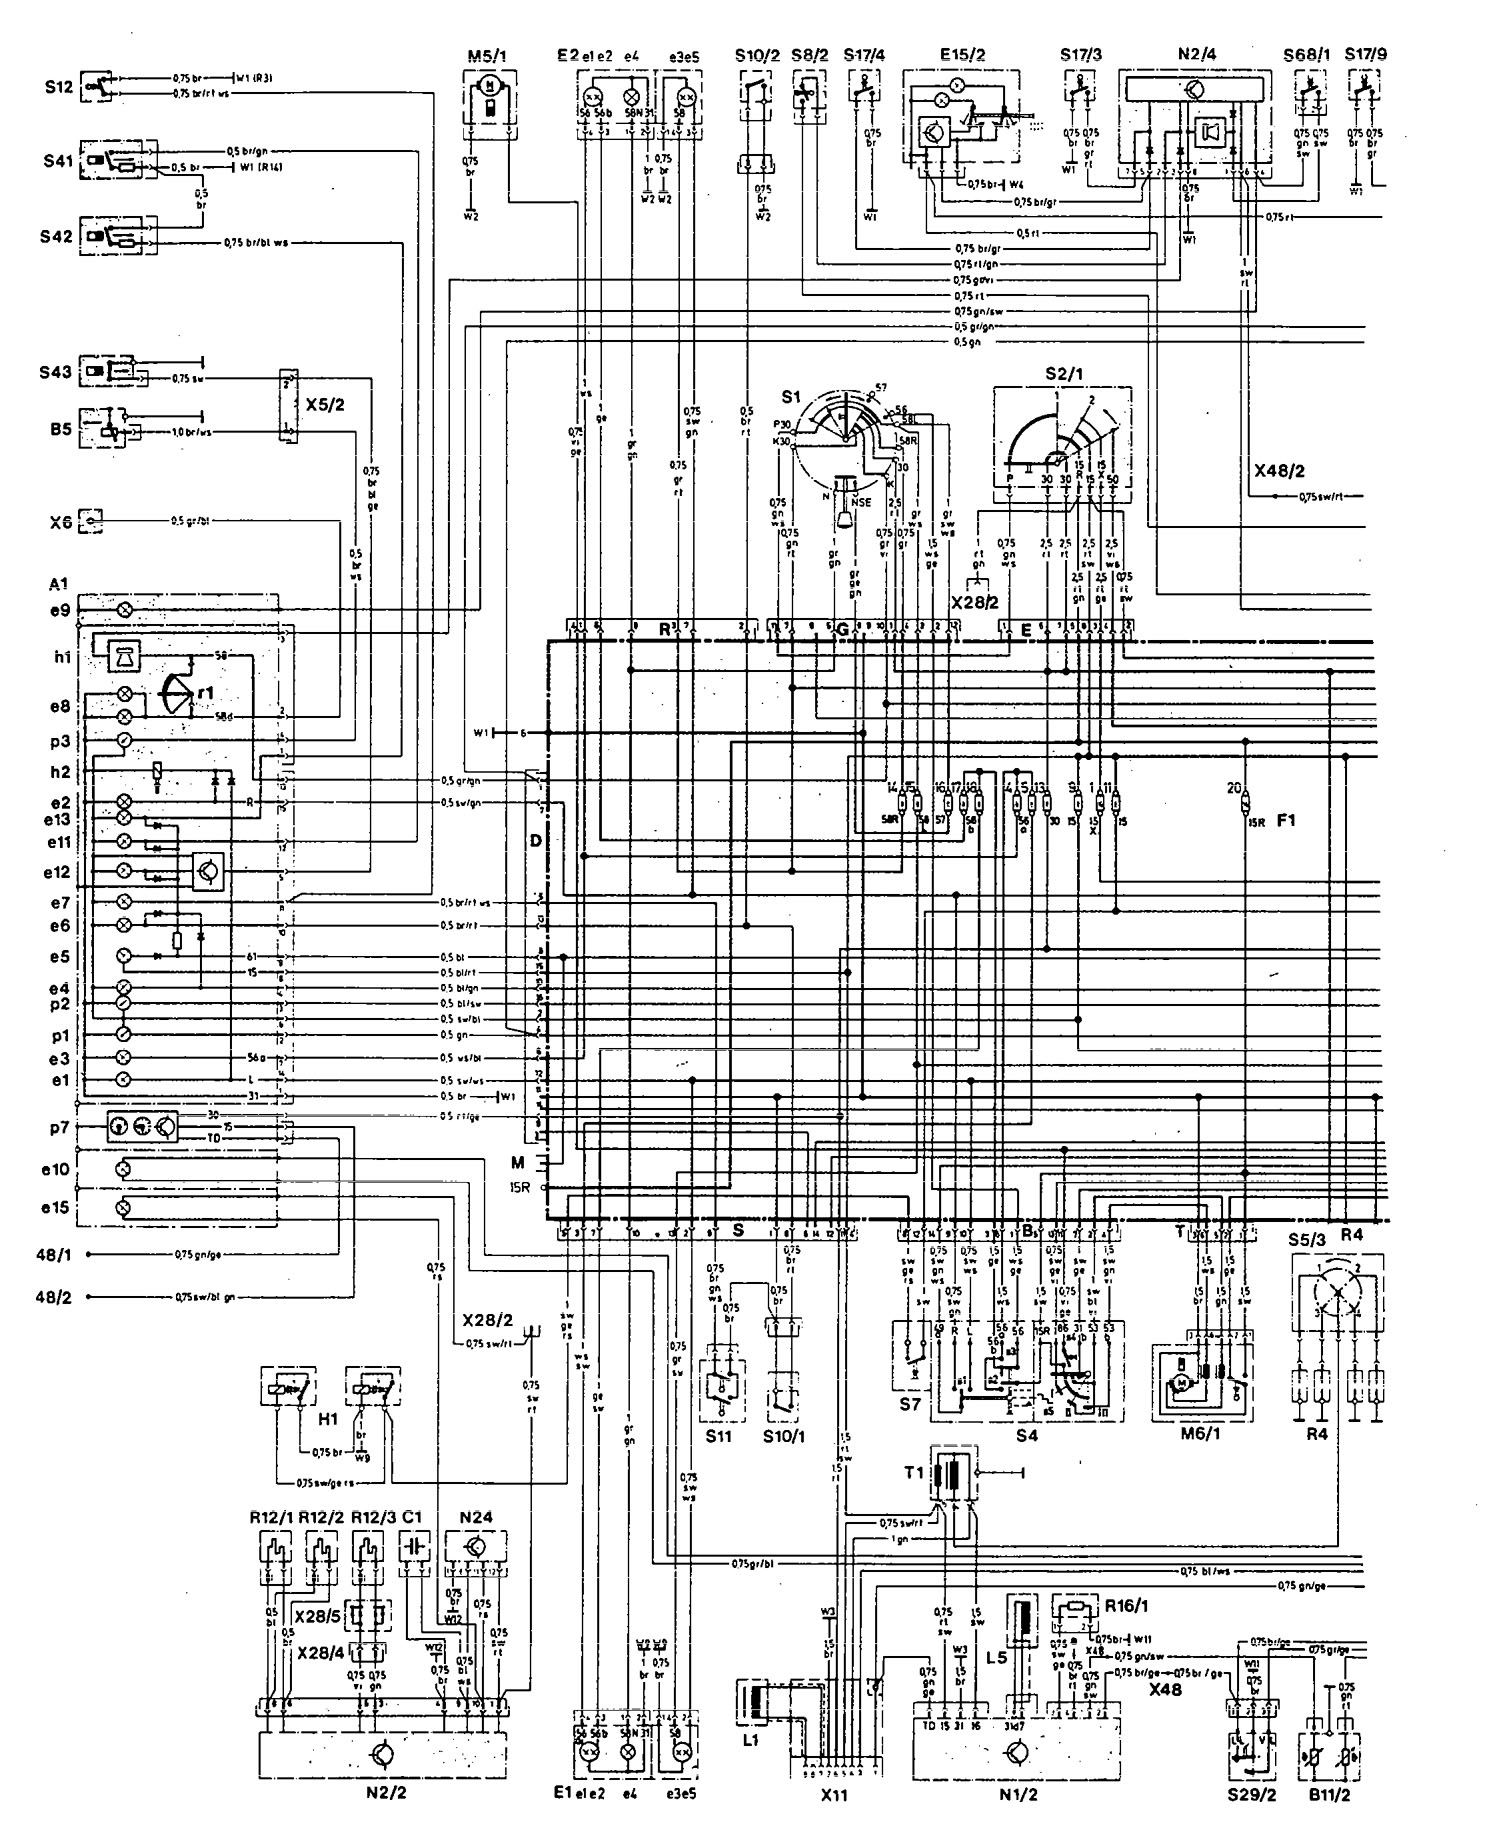 Mercedes 190E (1992) - wiring diagrams - fuel controls - Carknowledge.infoCarknowledge.info